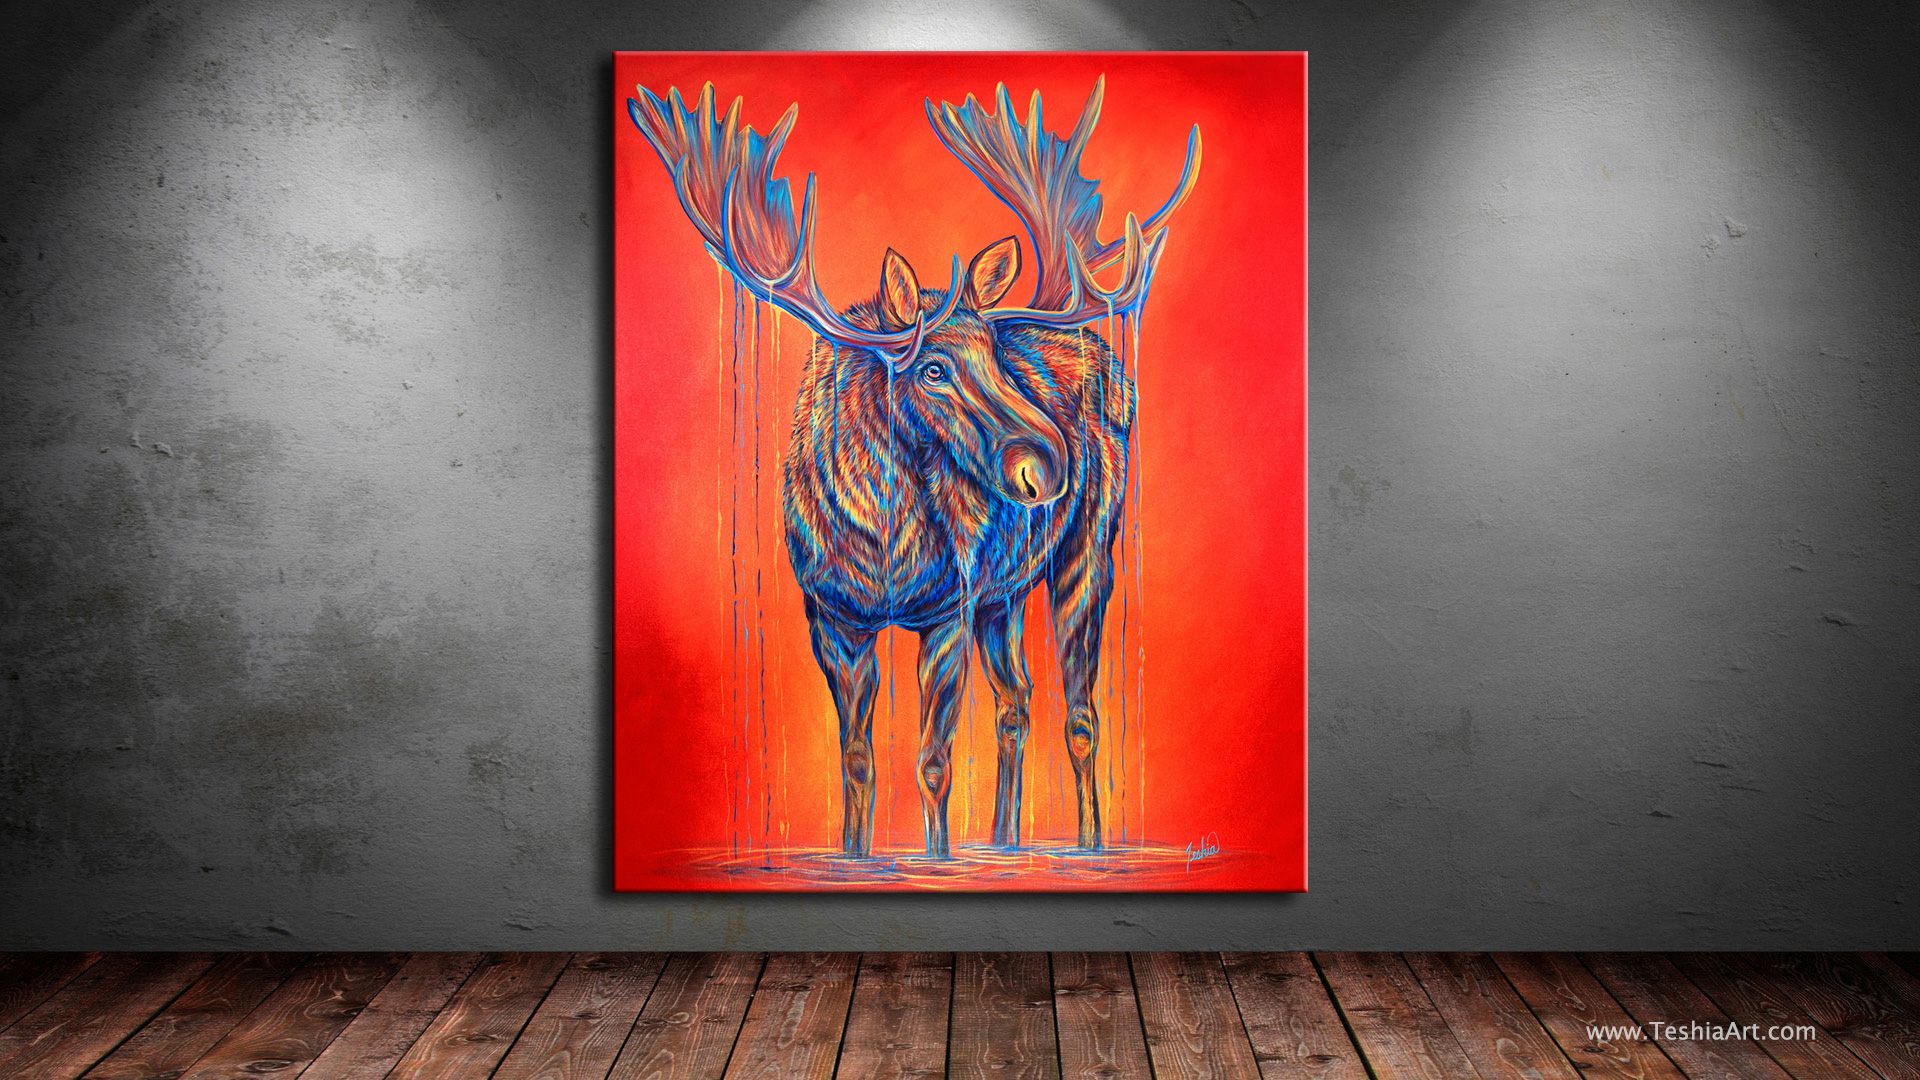 Moose-of-Spanish-Peaks-72x60-DISPLAY.jpg